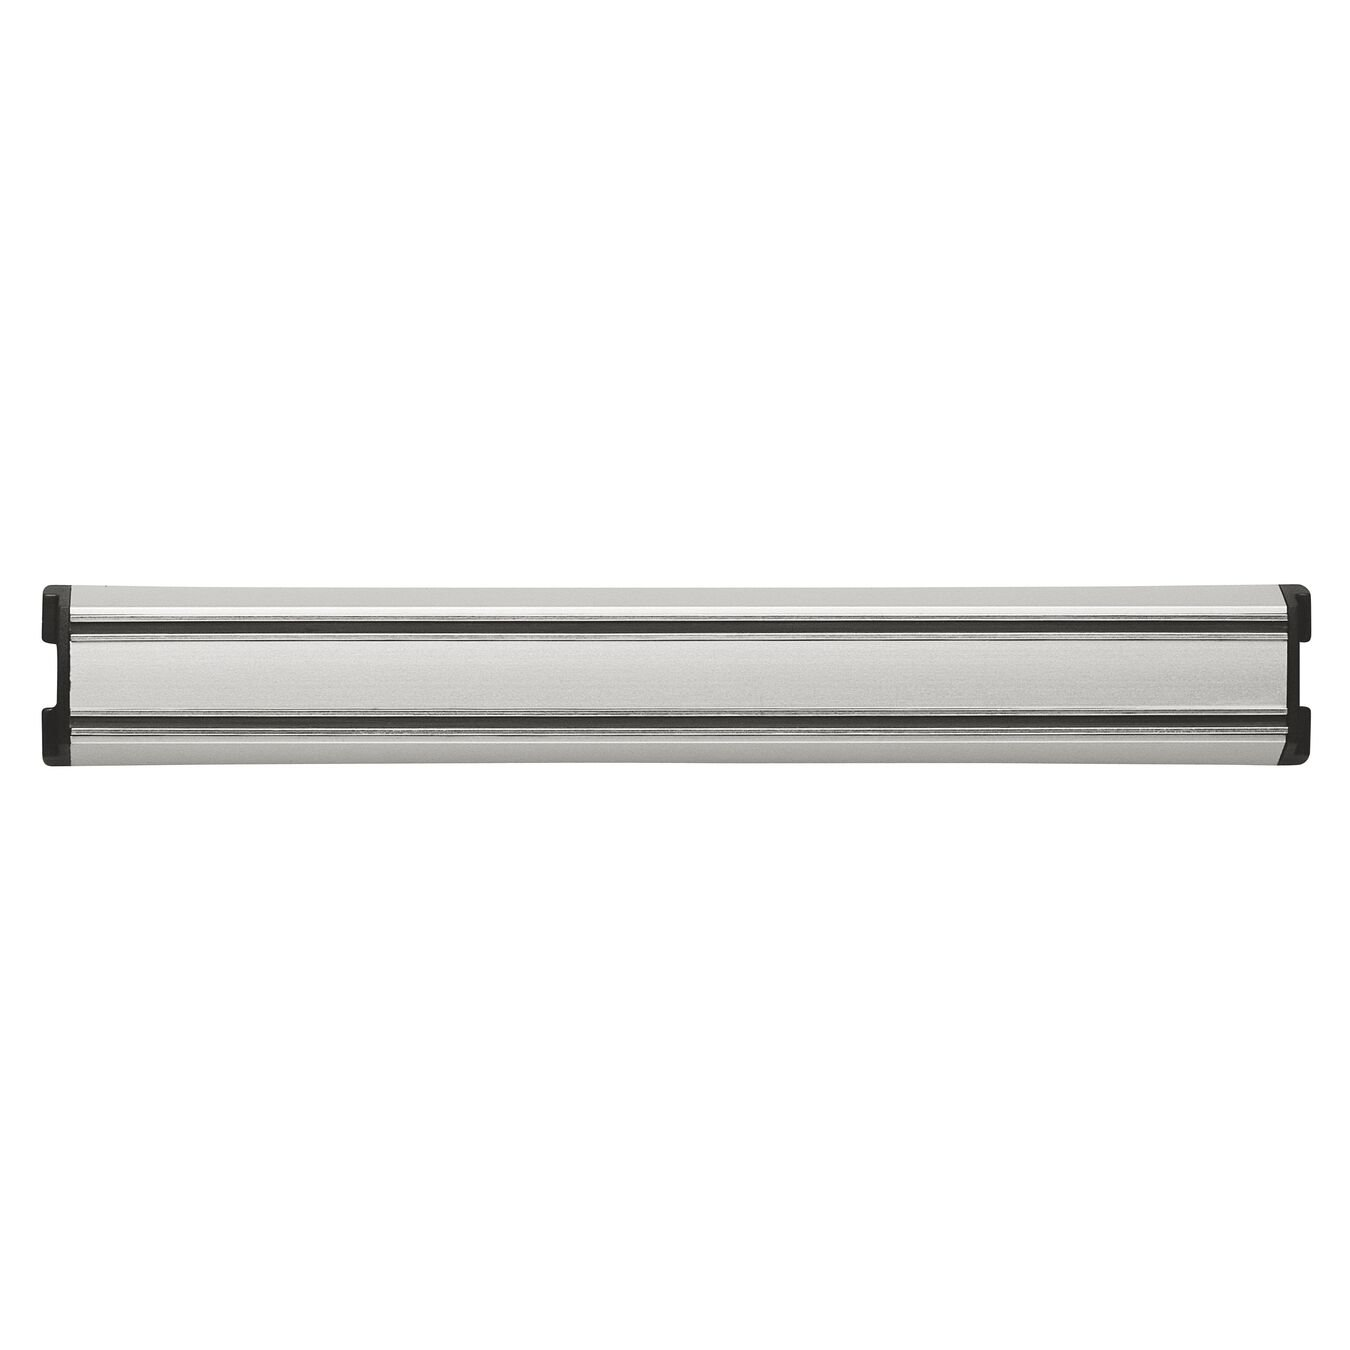 11.5-inch, aluminium, Magnetic knife bar, silver,,large 1